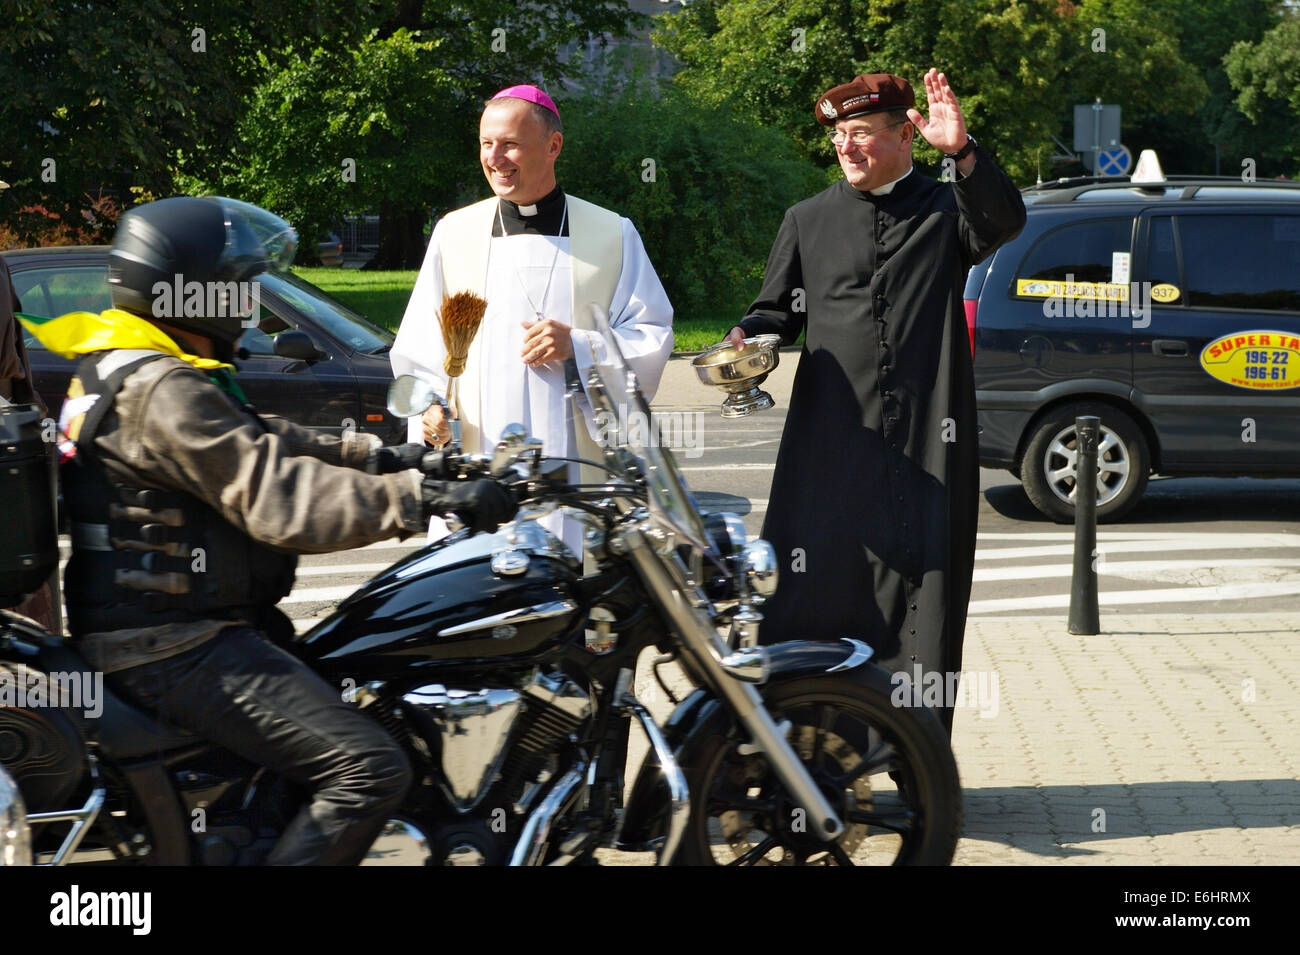 Marek Solarczyk, auxiliary Bishop of Warsaw-Praga diocese, blesses participants of the 14th International Motorcycle - Stock Image